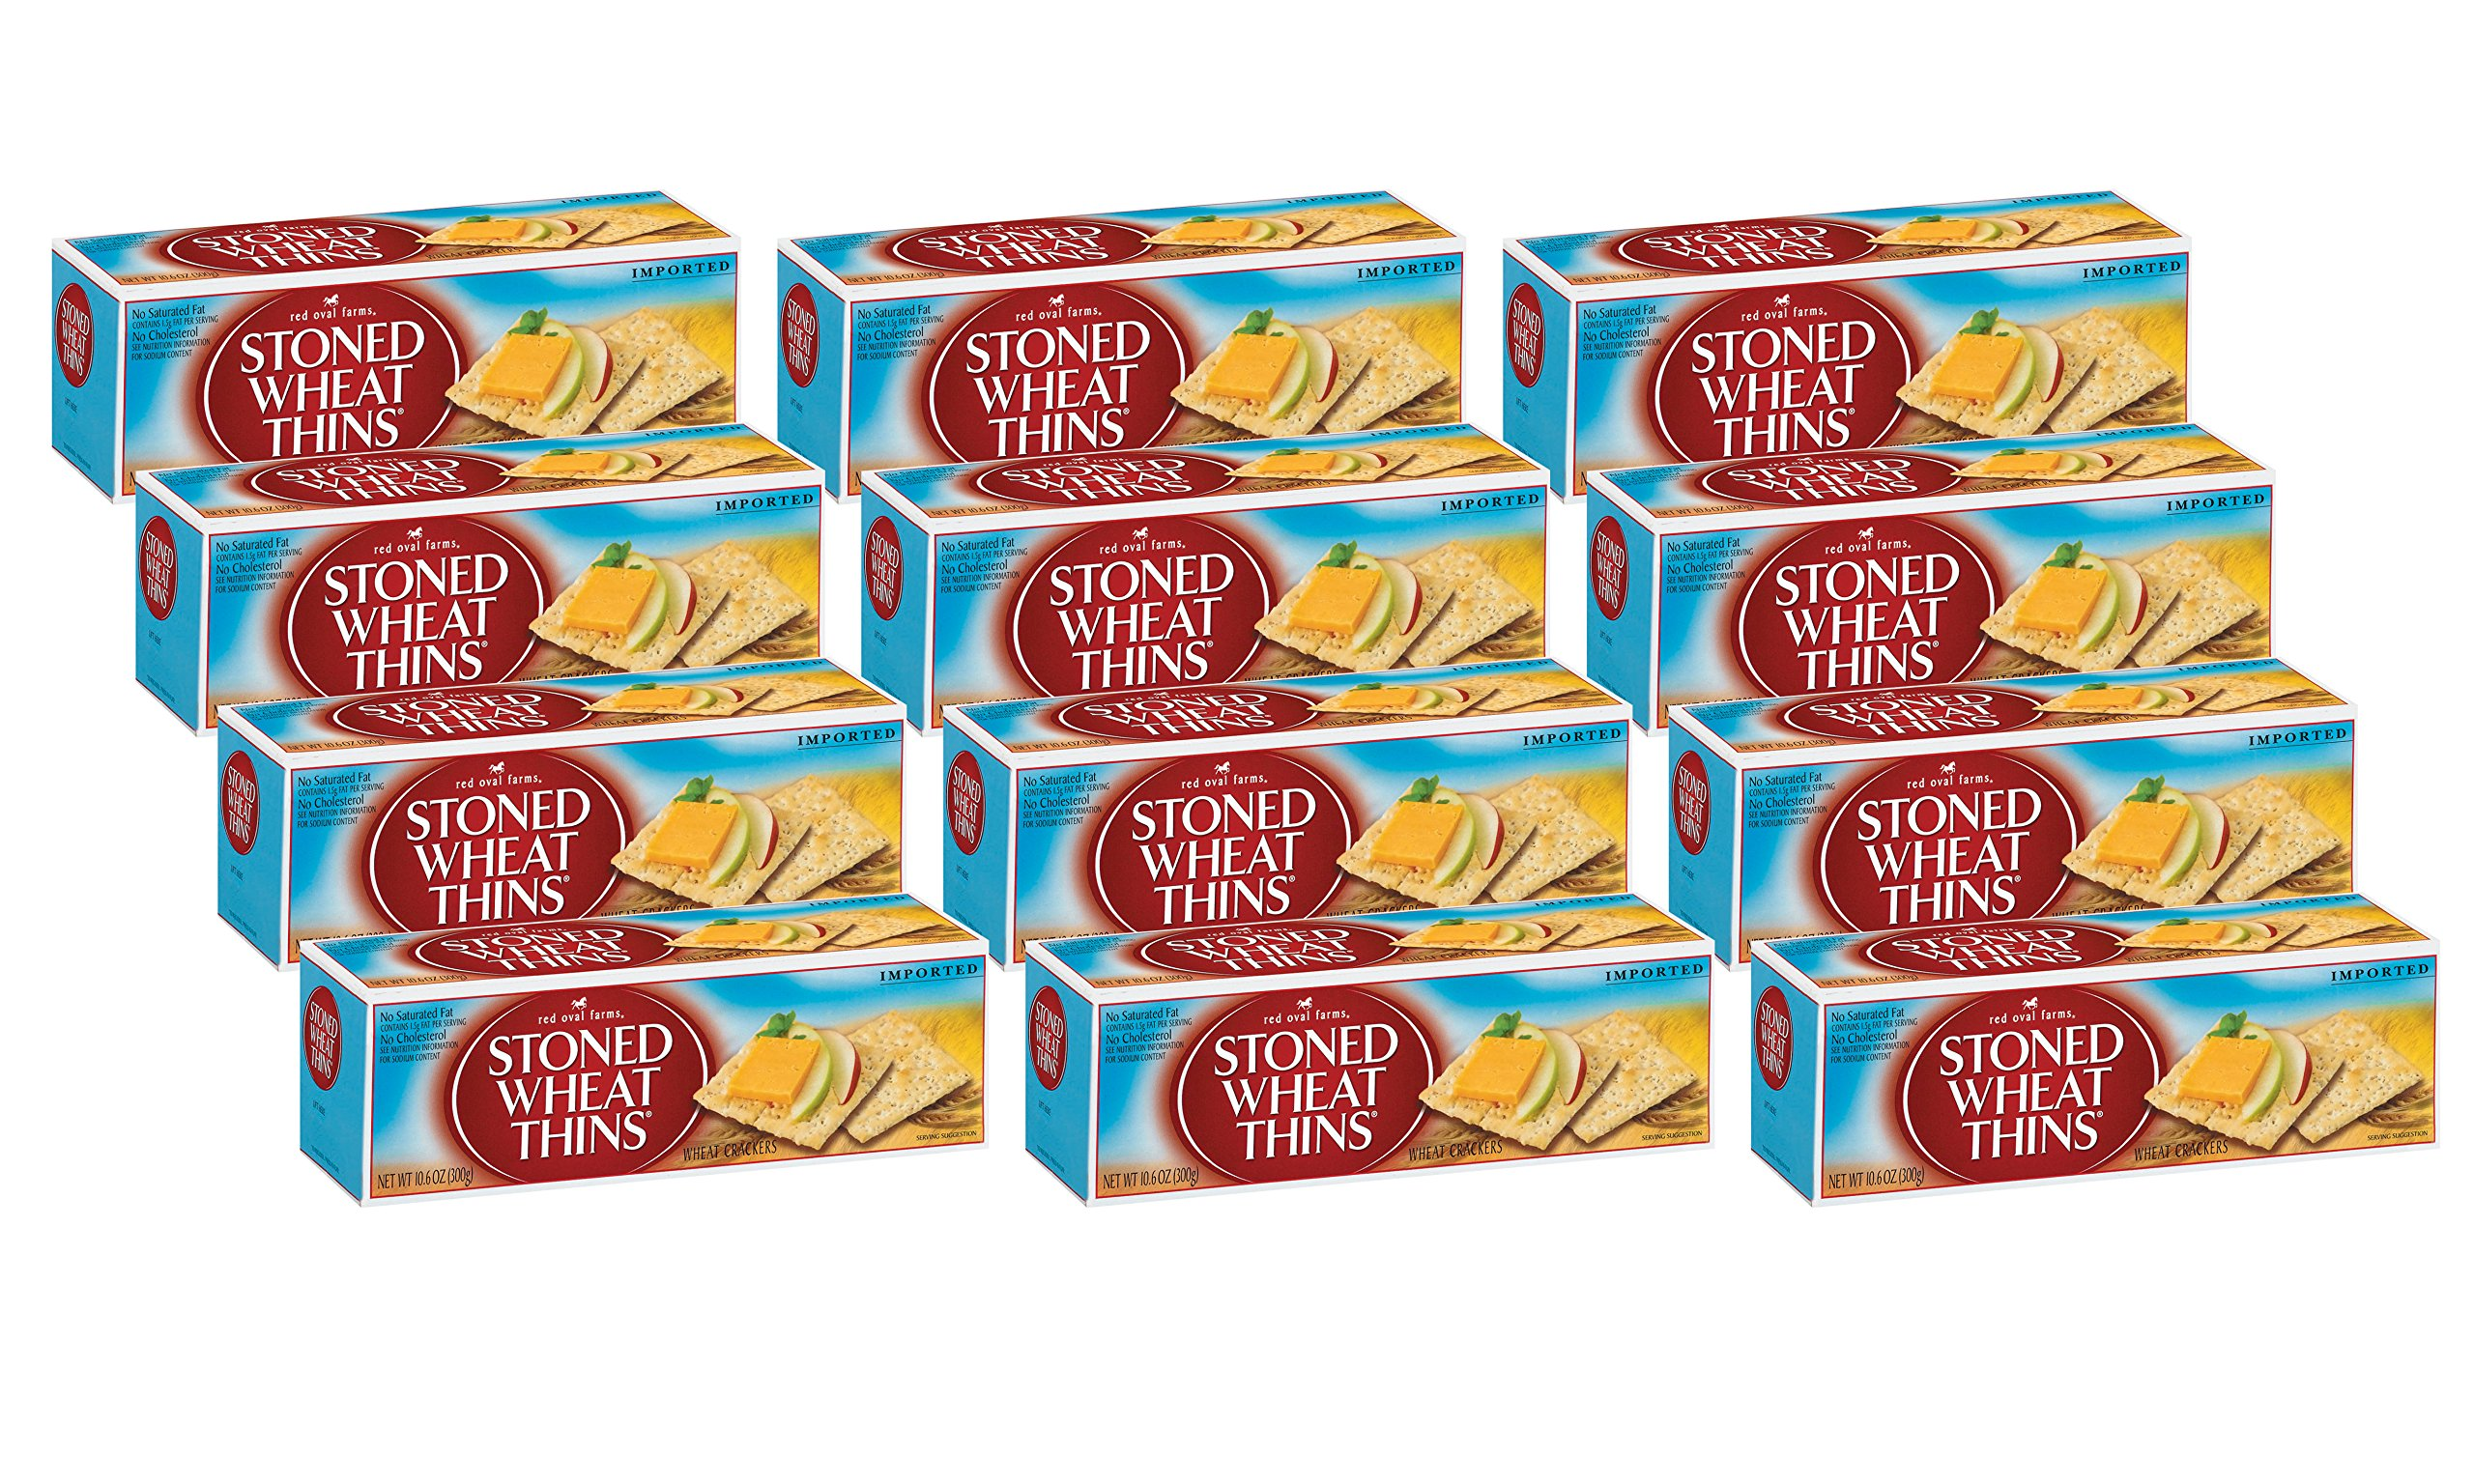 Red Oval Farms Stoned Wheat Thin Crackers, 10.6 Ounce (Pack of 12) by Wheat Thins (Image #2)